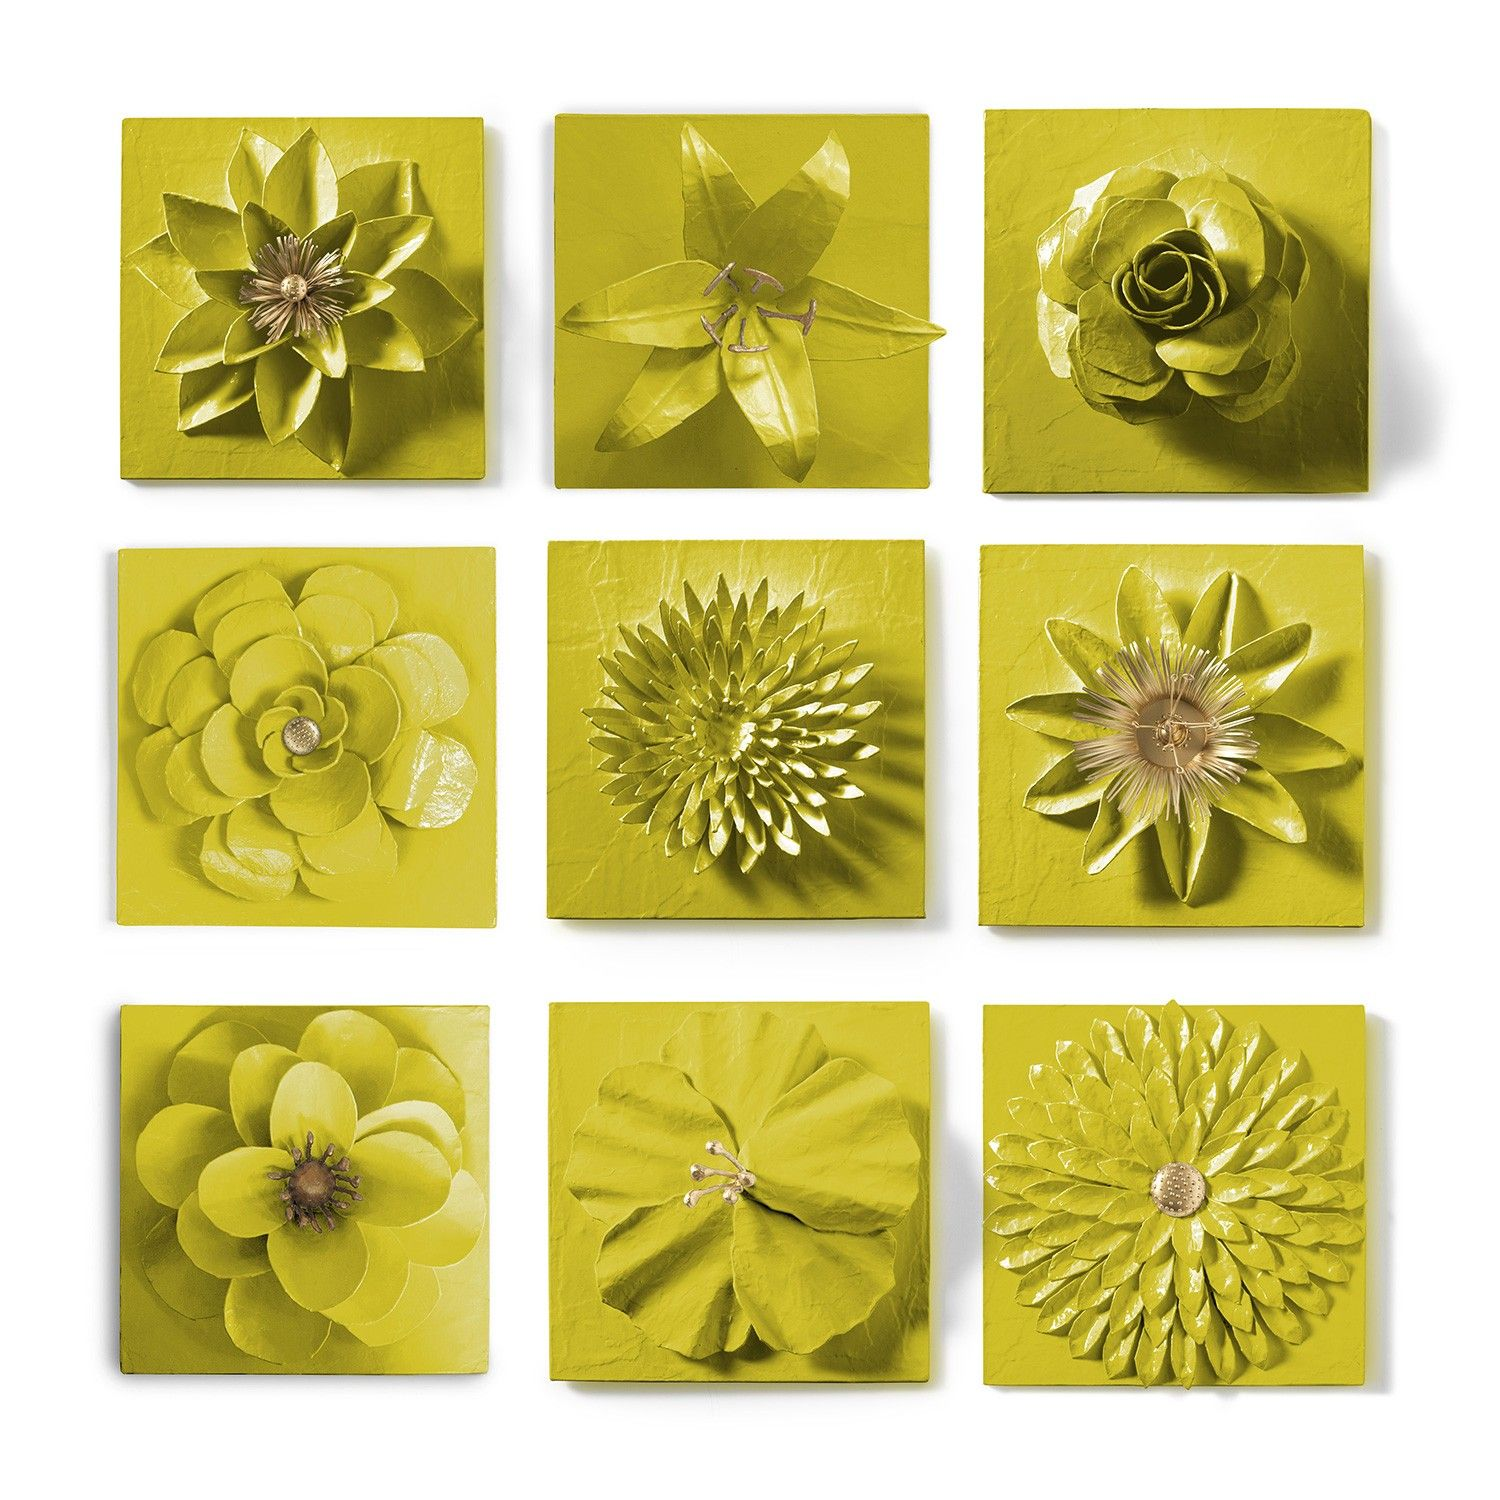 Flower Wall Tile Set | Flower wall, Wall tiles and Walls